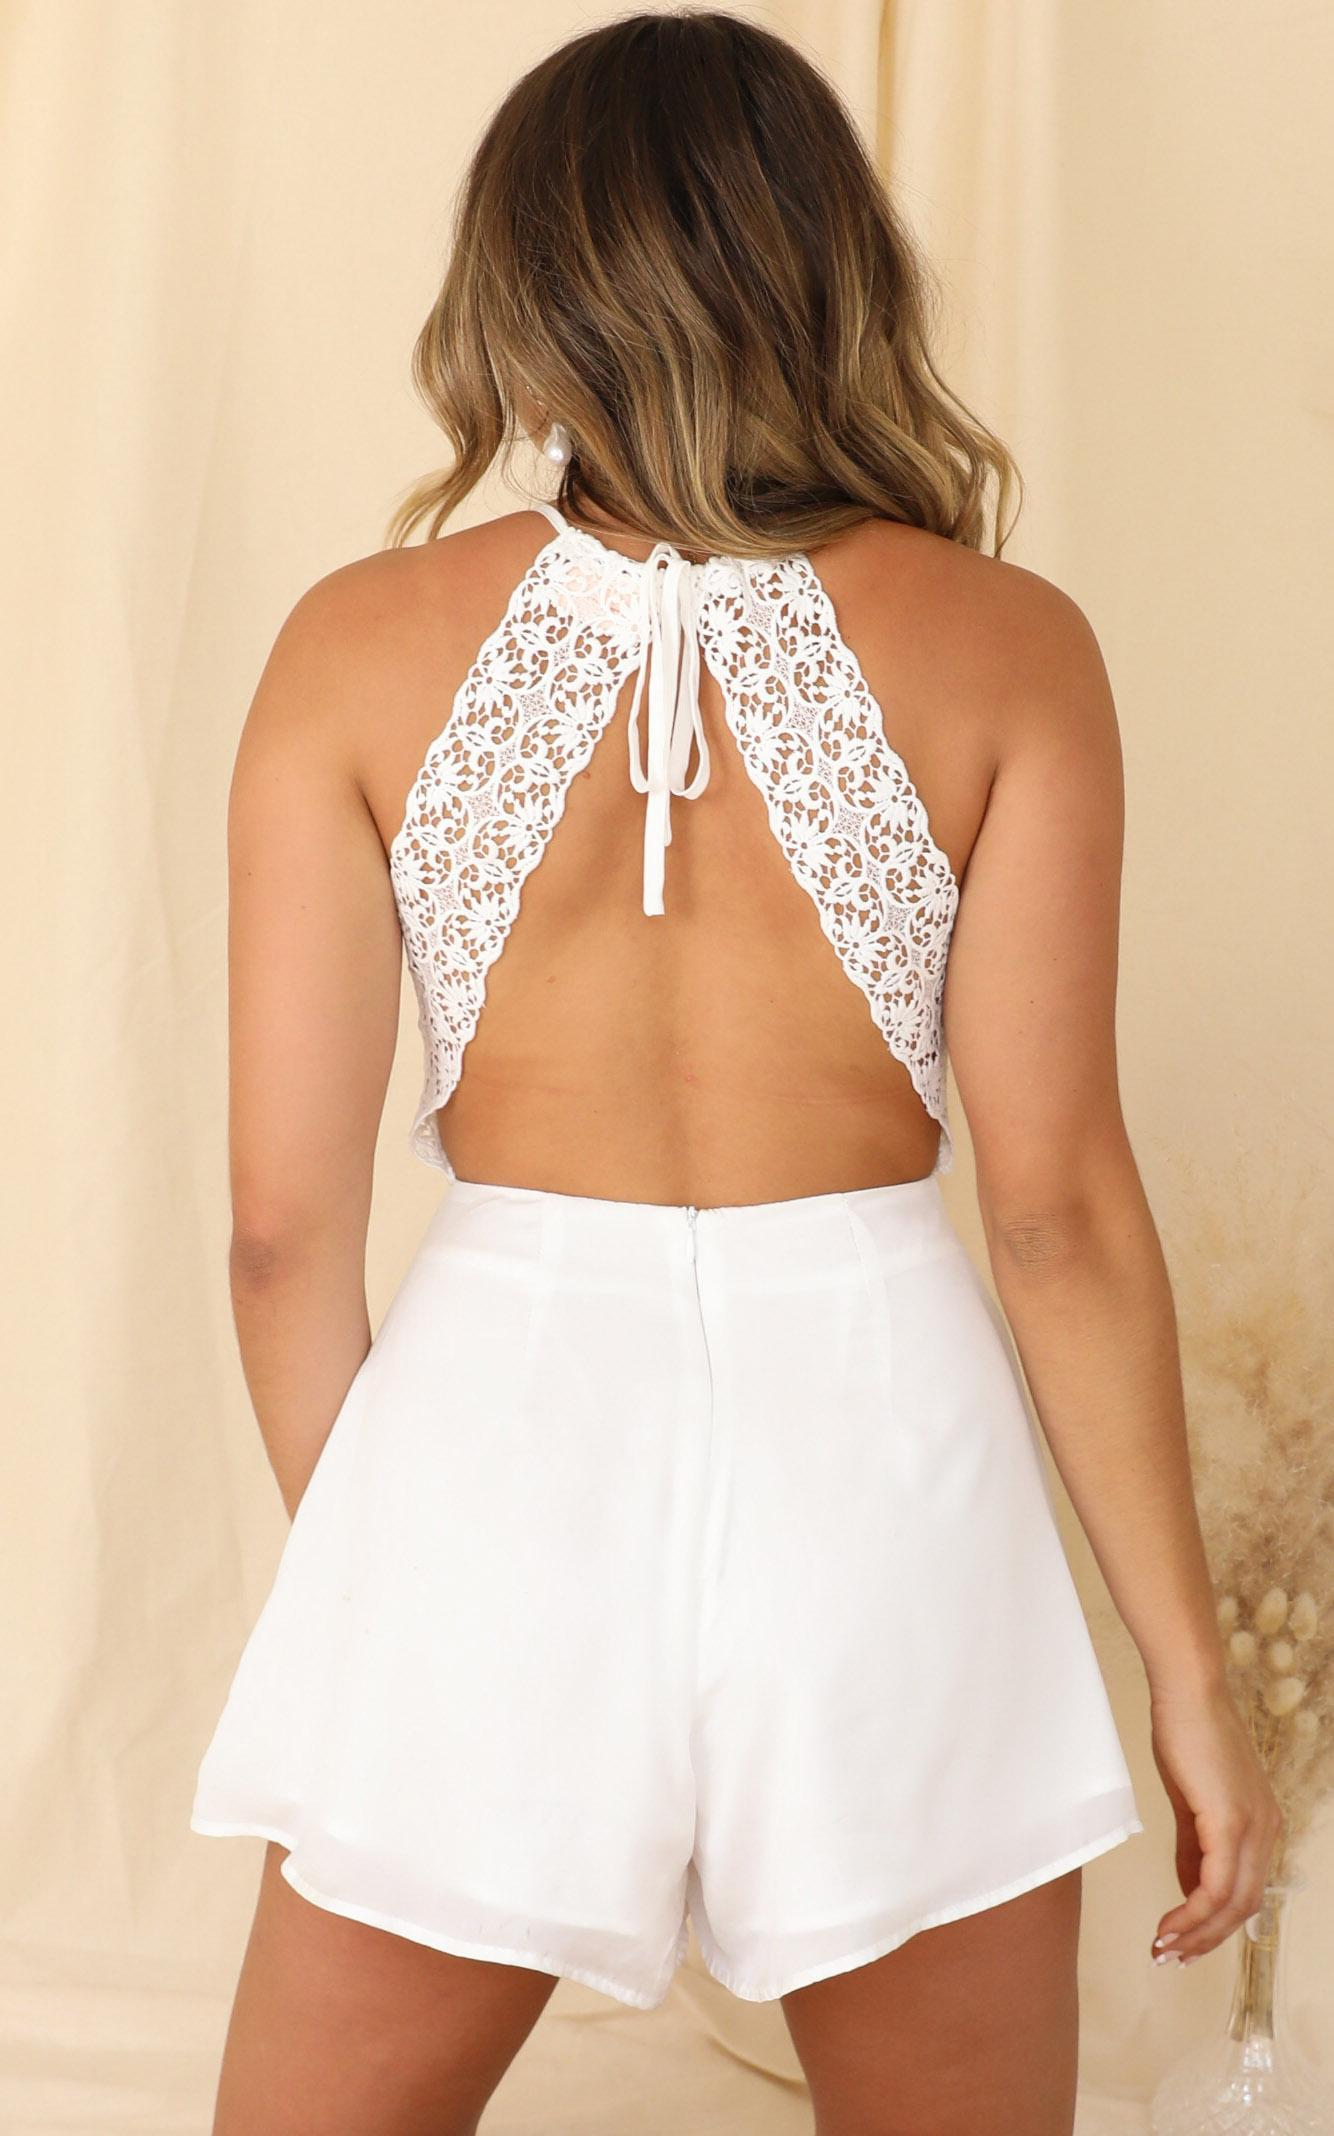 See Clearly Now Playsuit in white satin - 14 (XL), White, hi-res image number null